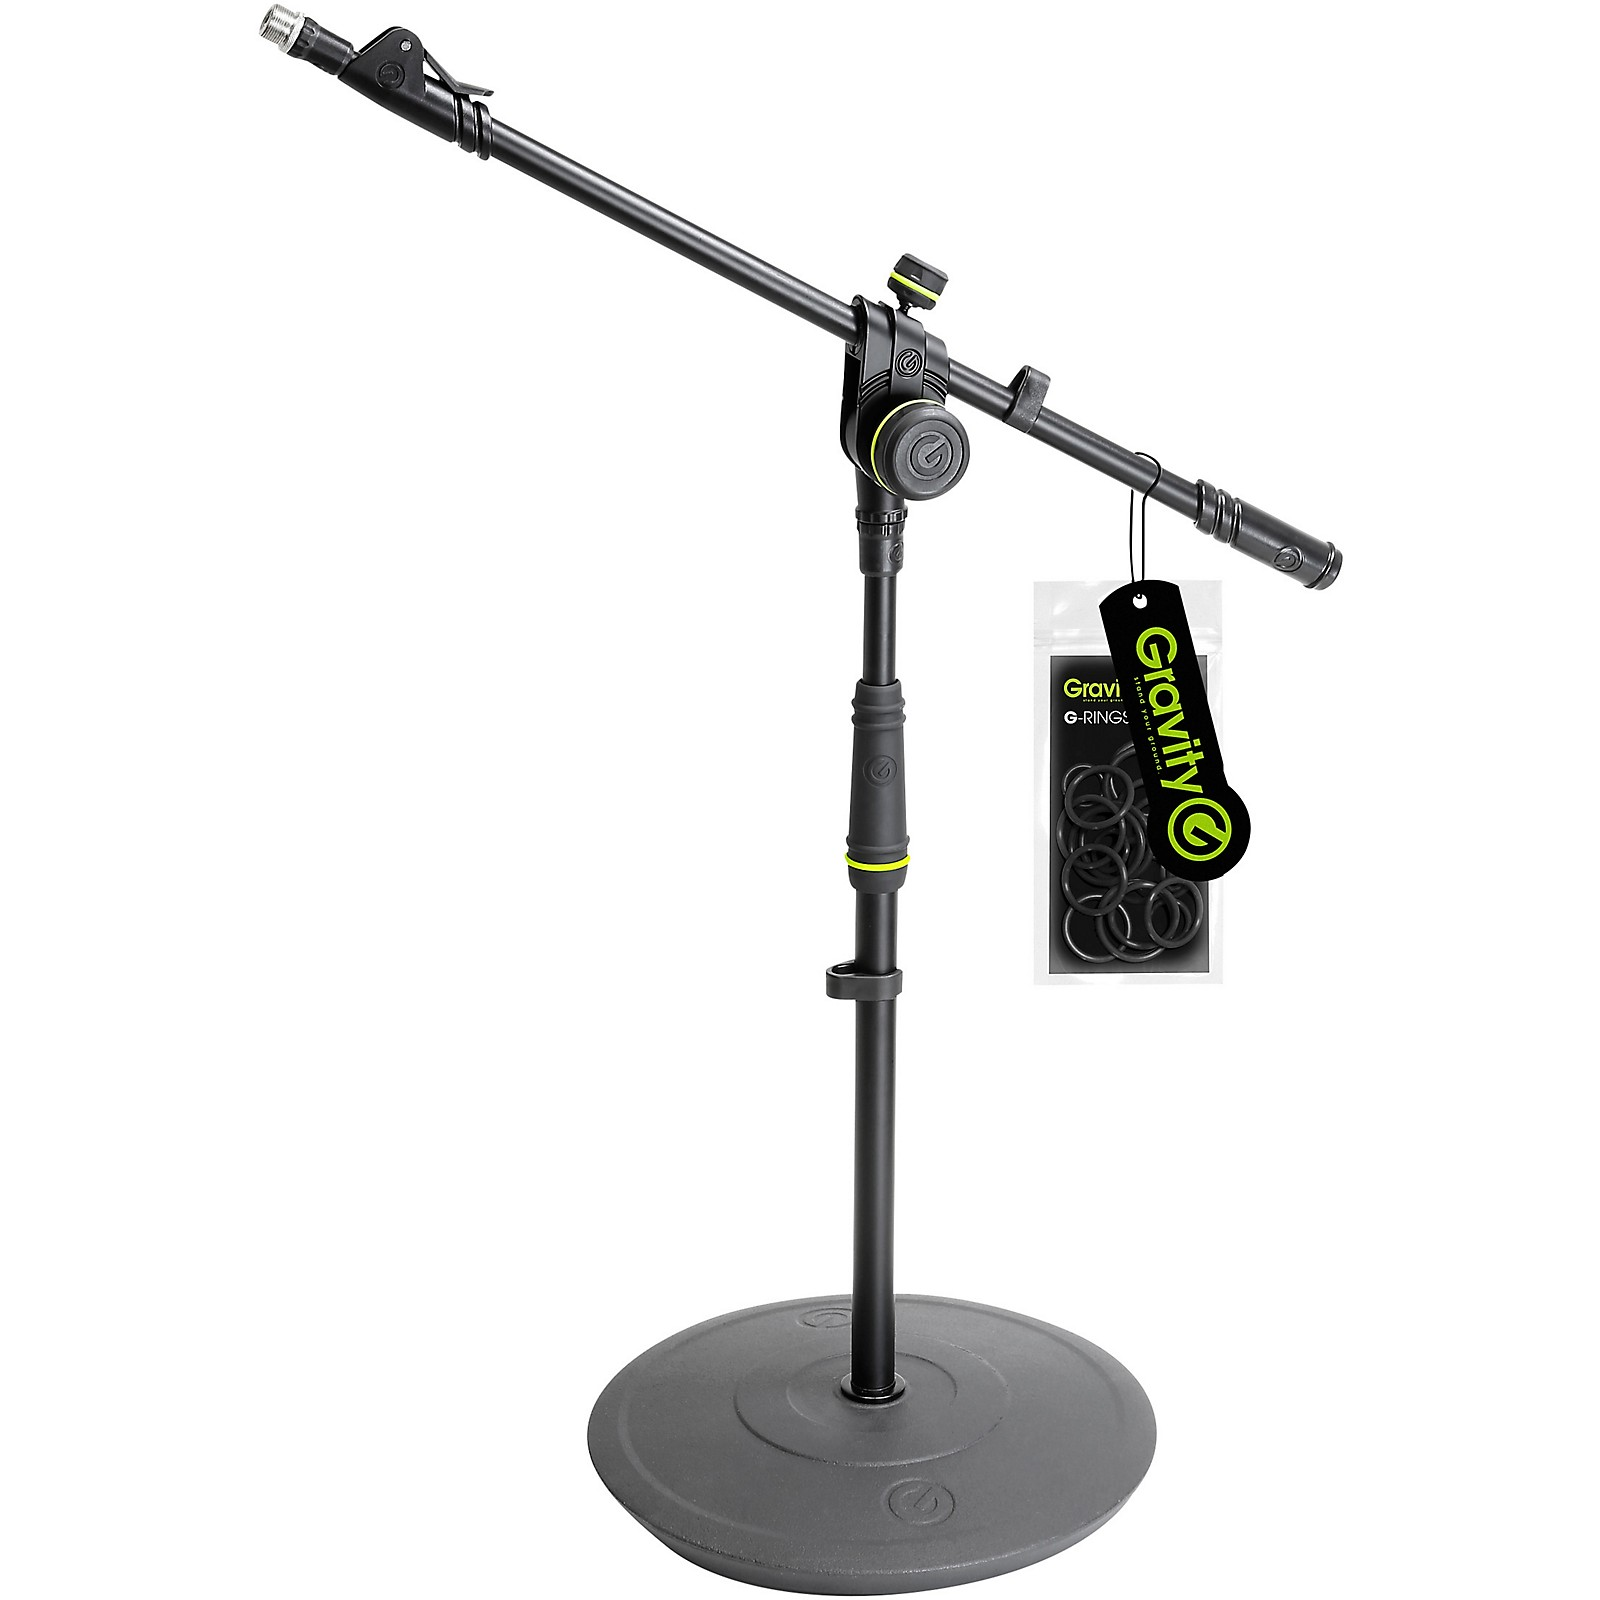 Gravity Stands Short Microphone Stand With Round Base And 2-Point Adjustment Telescoping Boom